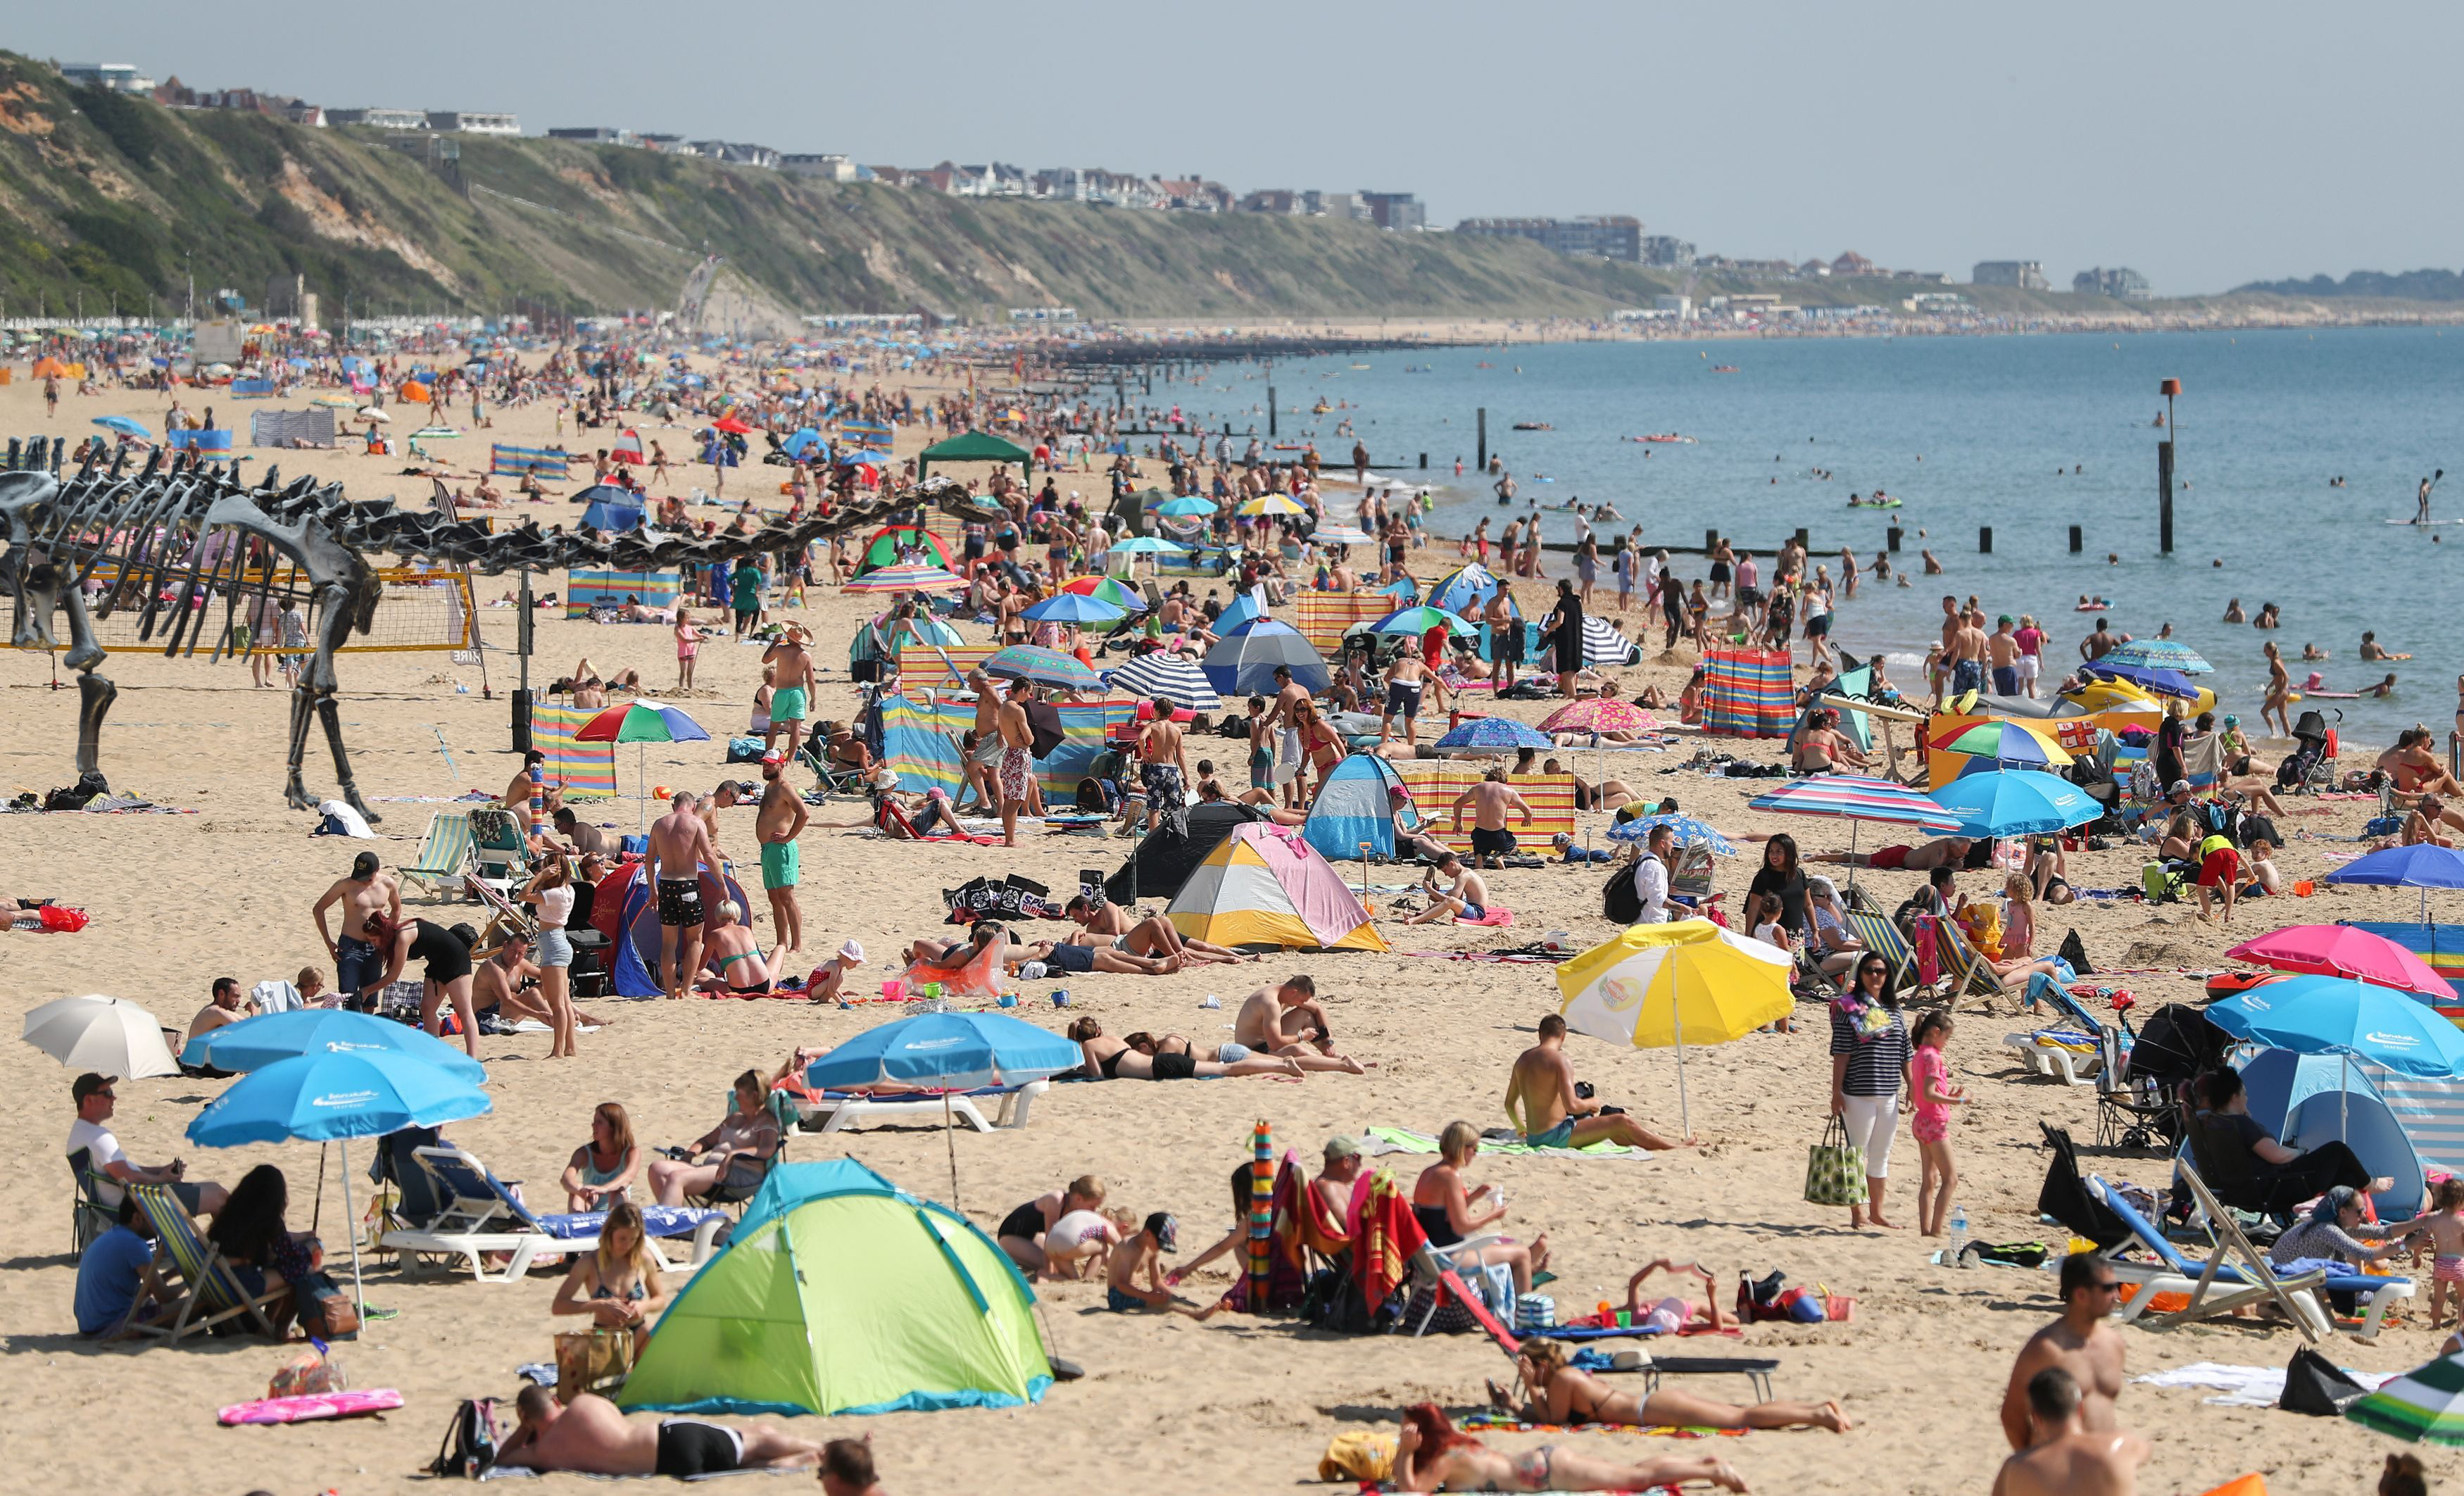 People sunbathe on Boscombe beach in Dorset, as Britons enjoy predicted highs of 27C (81F) after a wet and cool August.